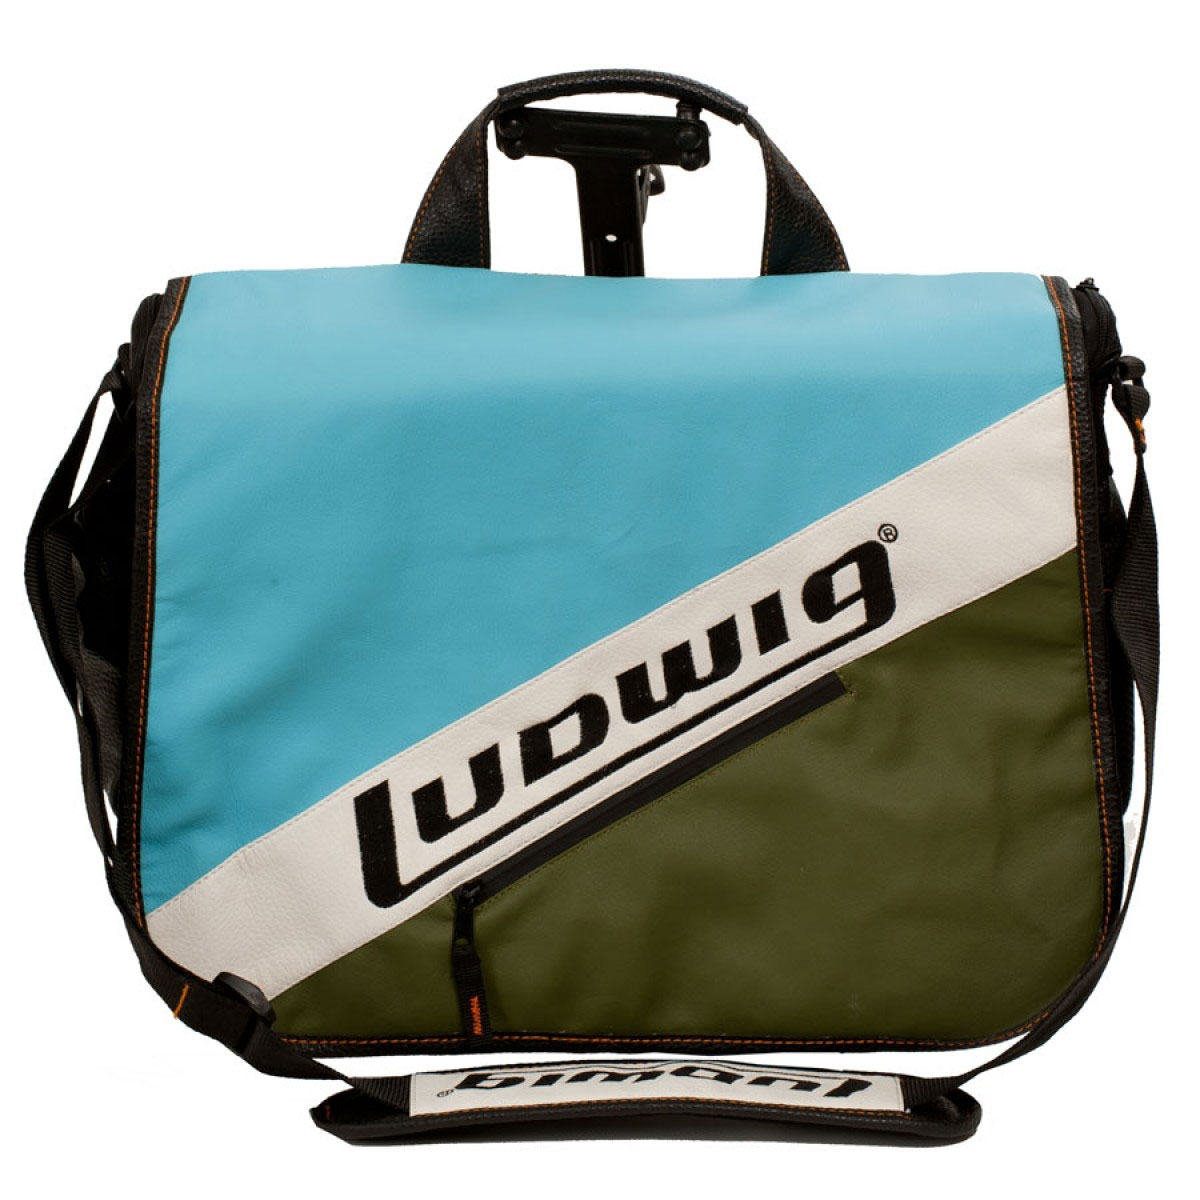 Ludwig Atlas Classic Laptop Bag